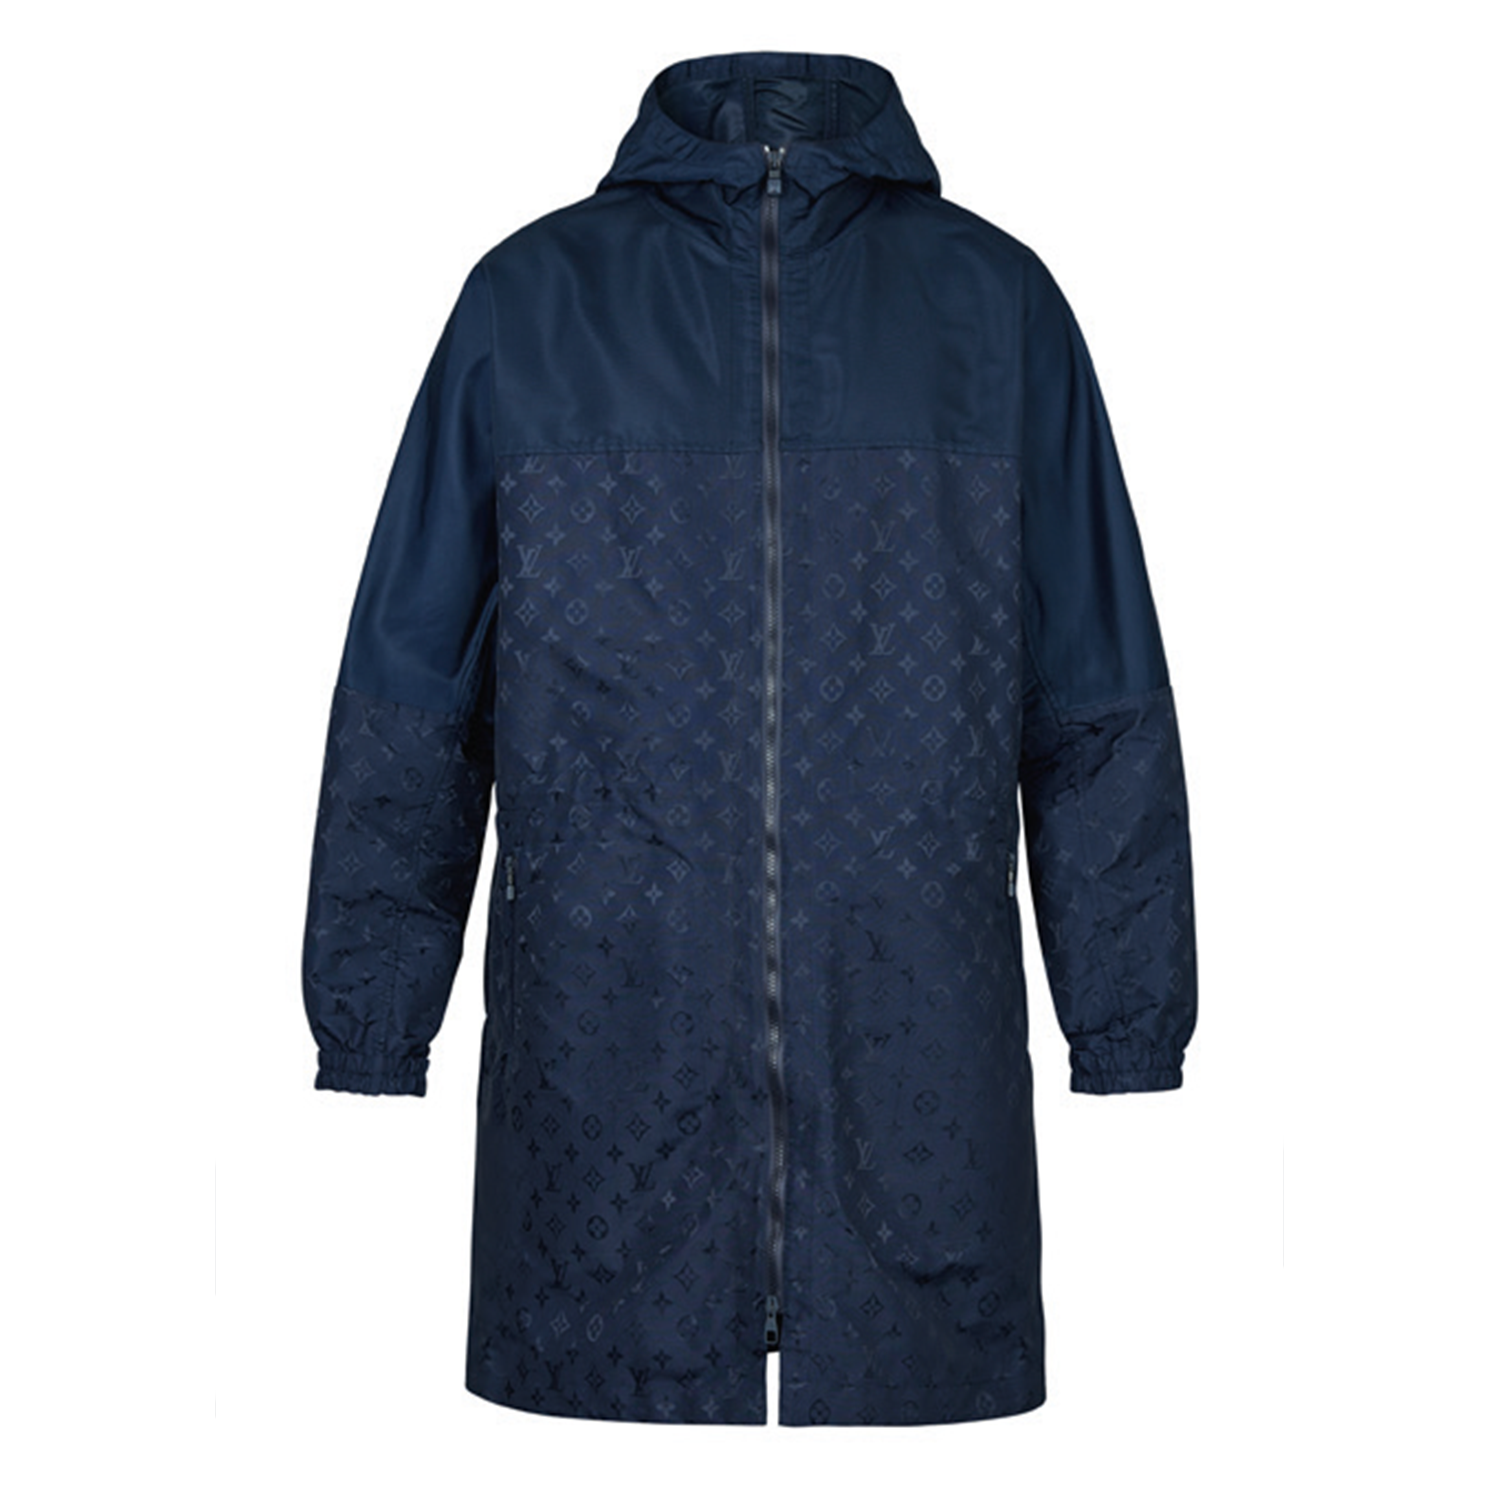 MONOGRAM LIGHTWEIGHT COAT - €2500 $36001A474PMONOGRAM JACQUARD